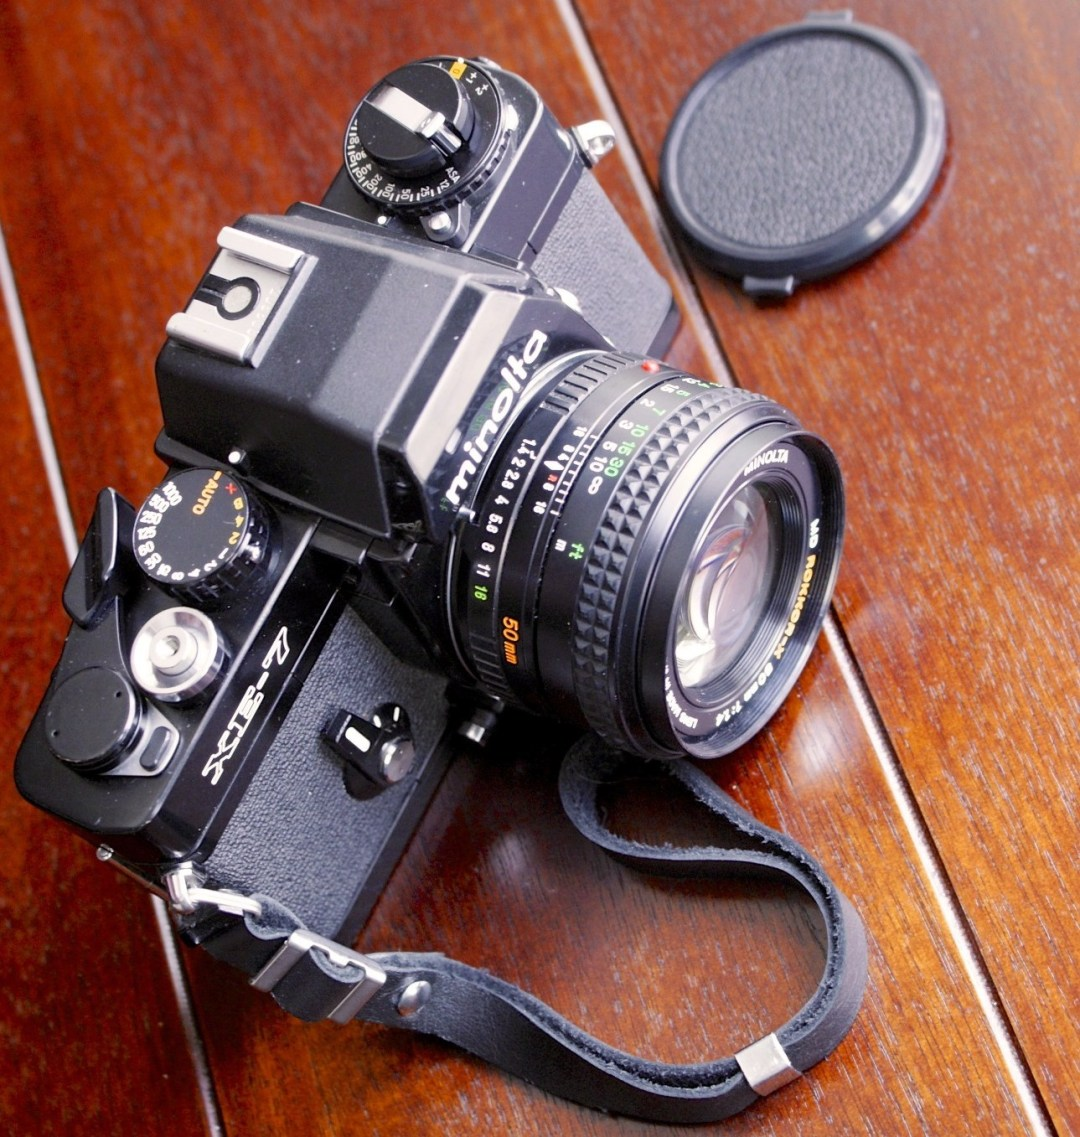 Minolta XE-7 SLR - Camera Review - Casual Photophile